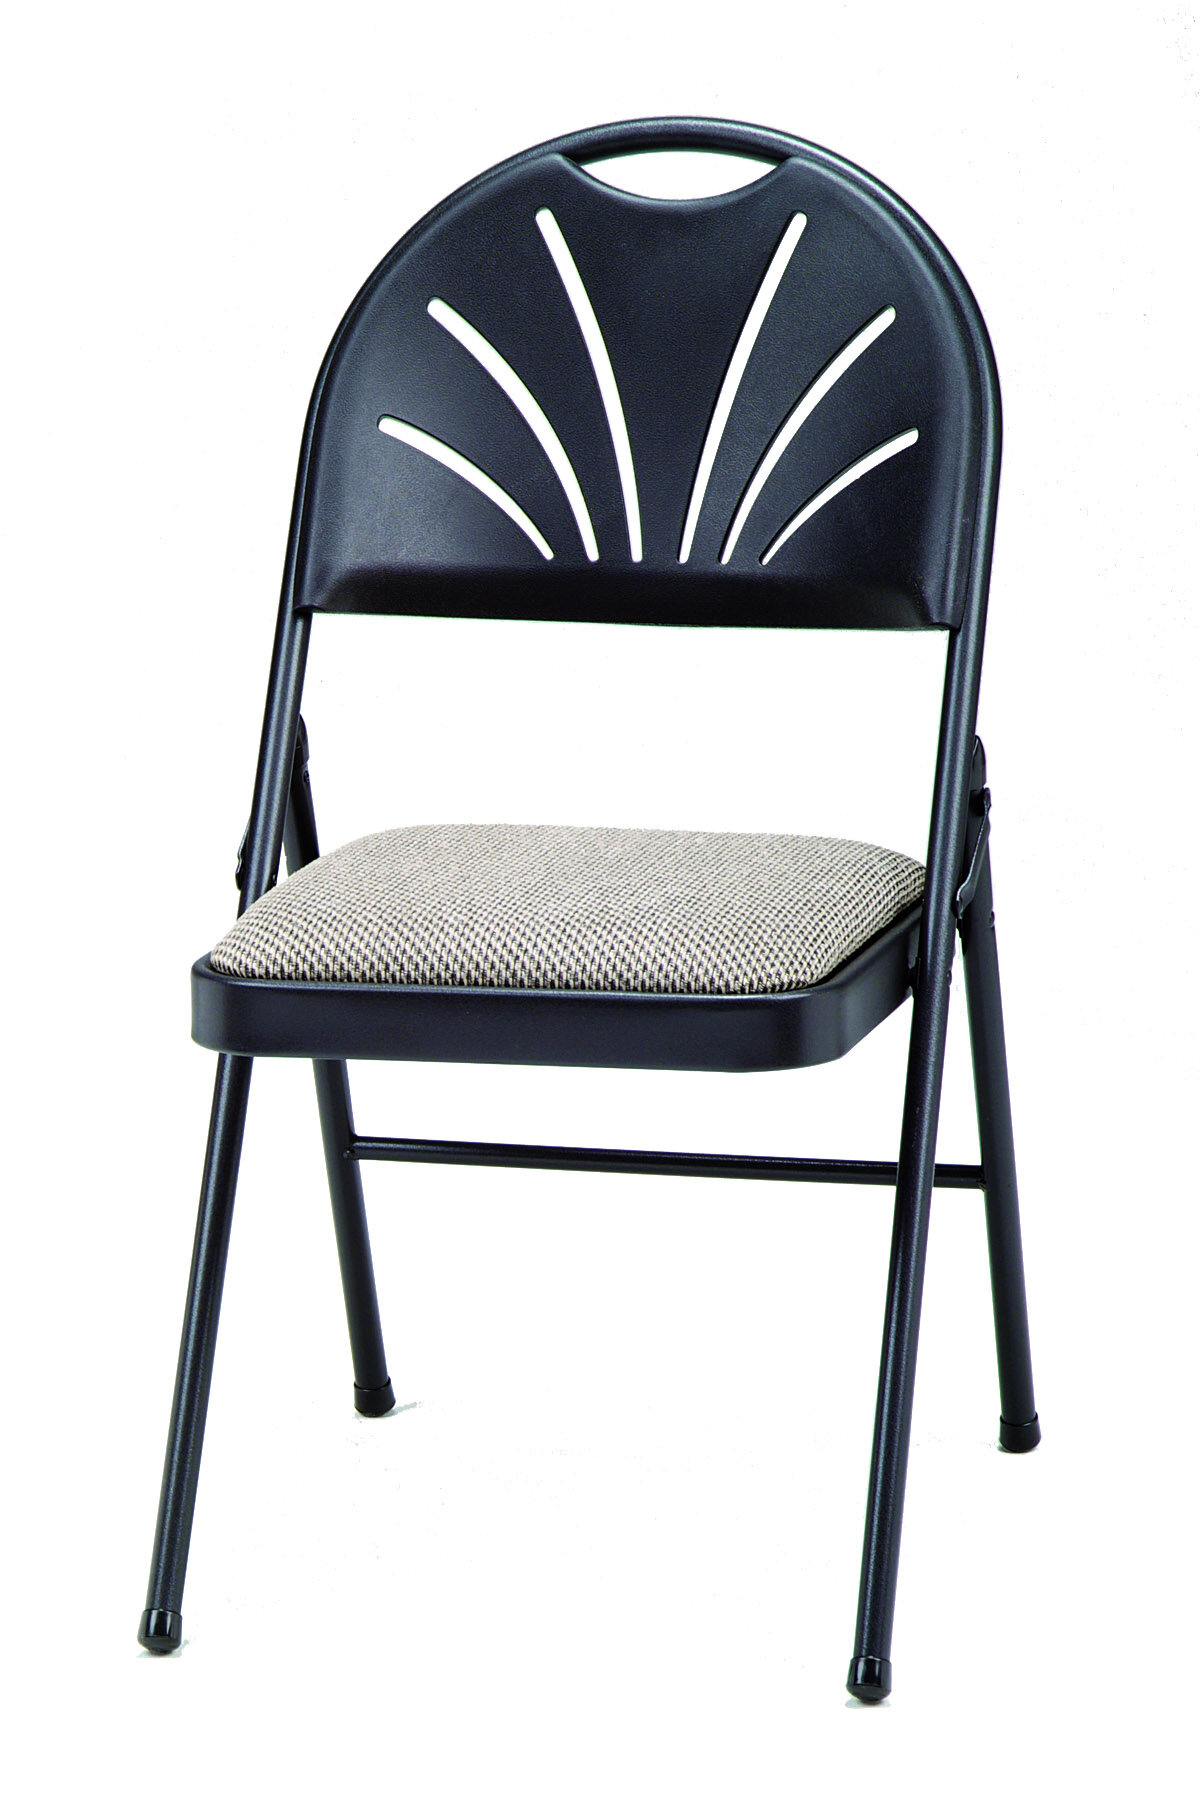 Meco Hg Plastic Padded Folding Chair